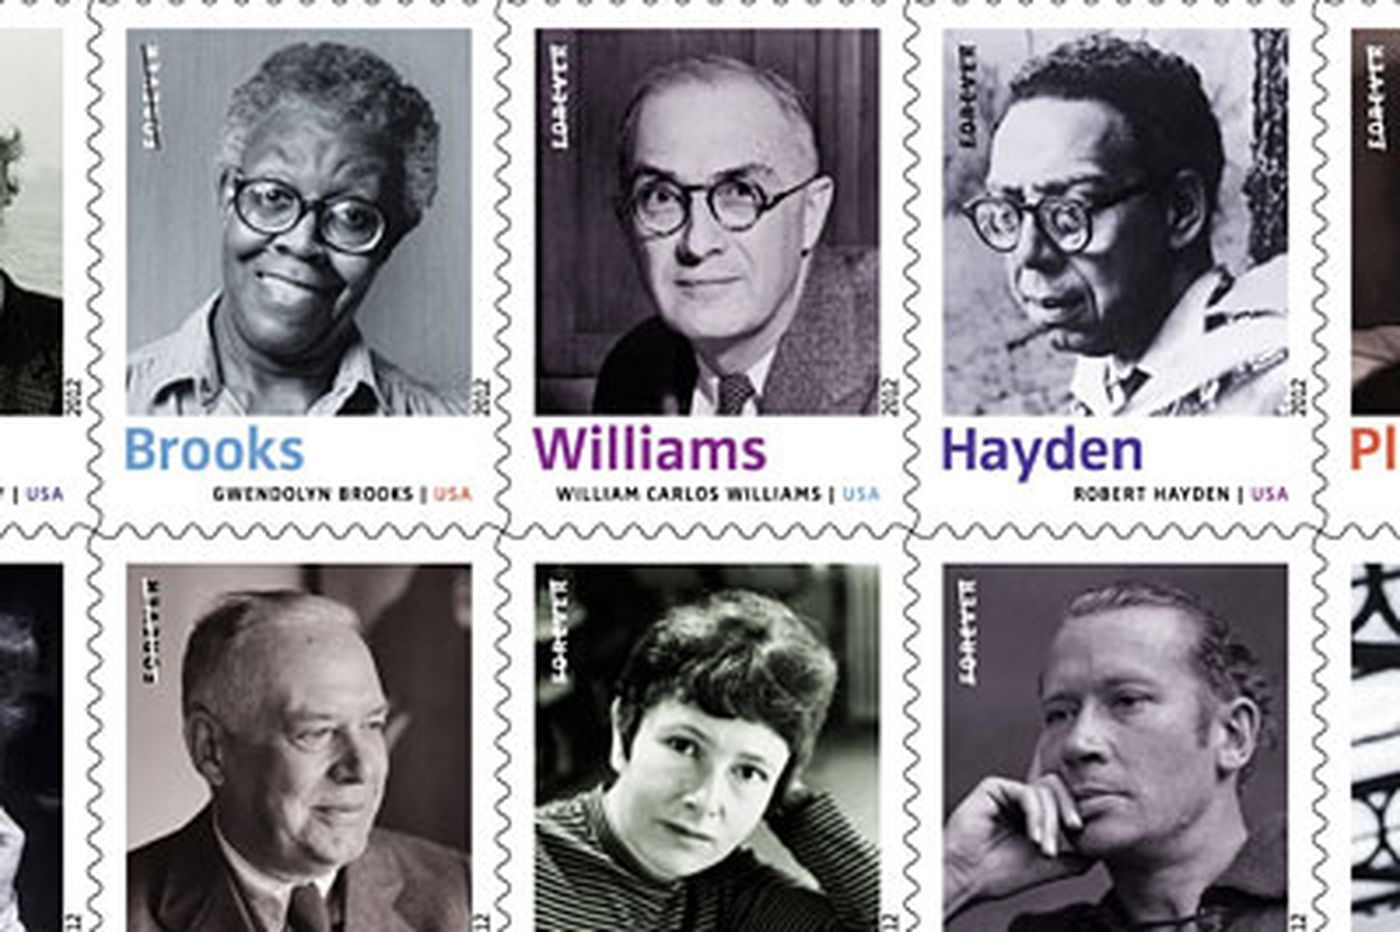 USPS putting its stamp on U.S. poets